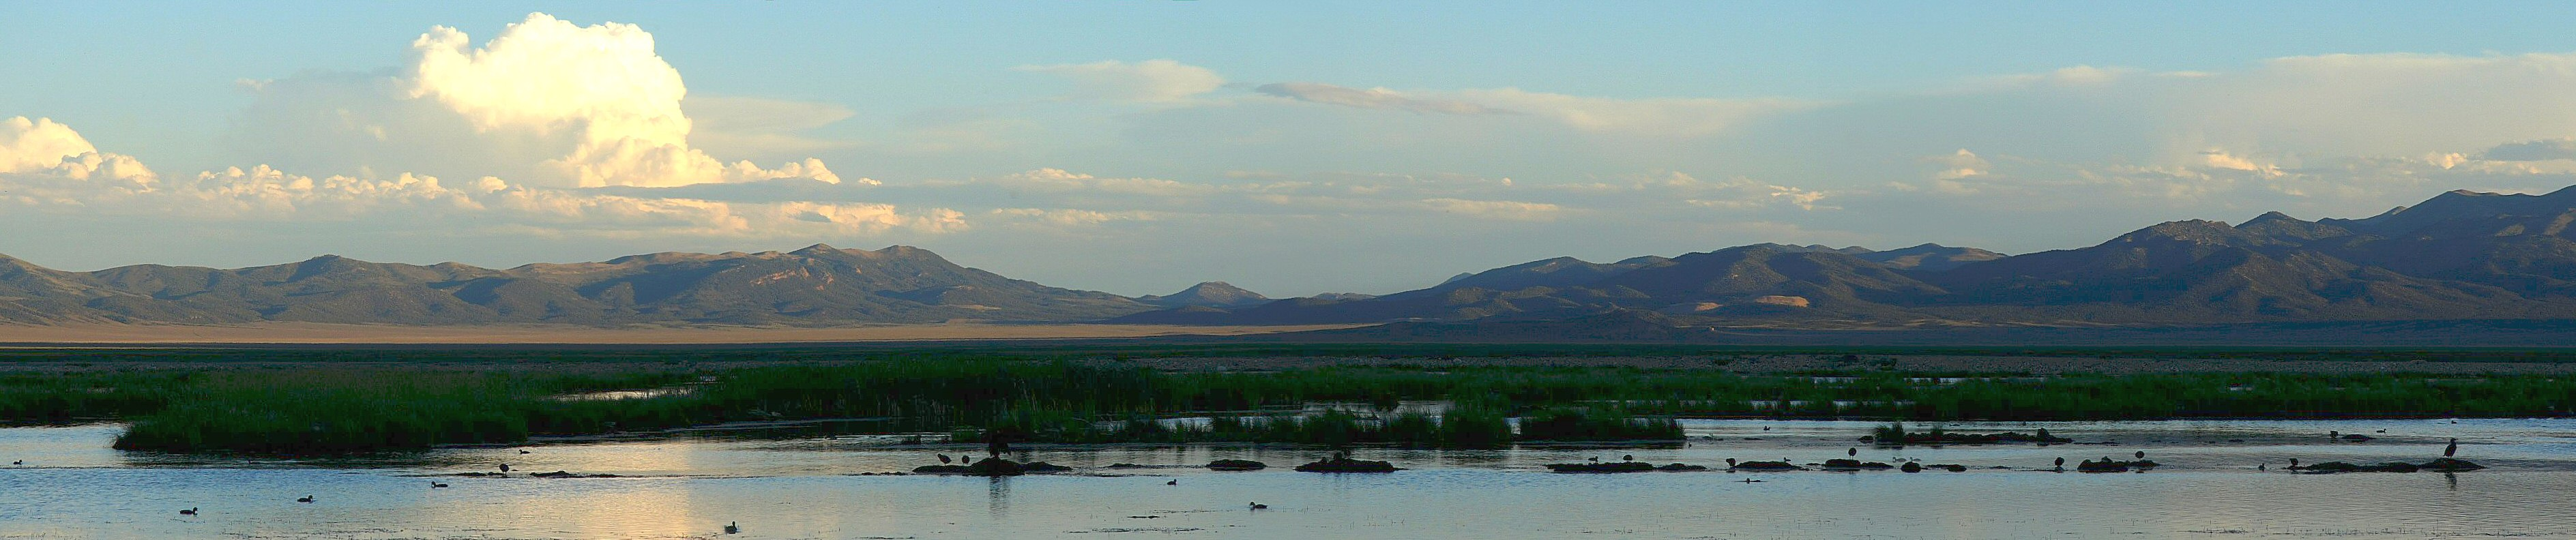 Evening at the Ruby Lake Nat'l Wildlife Refuge, Nevada